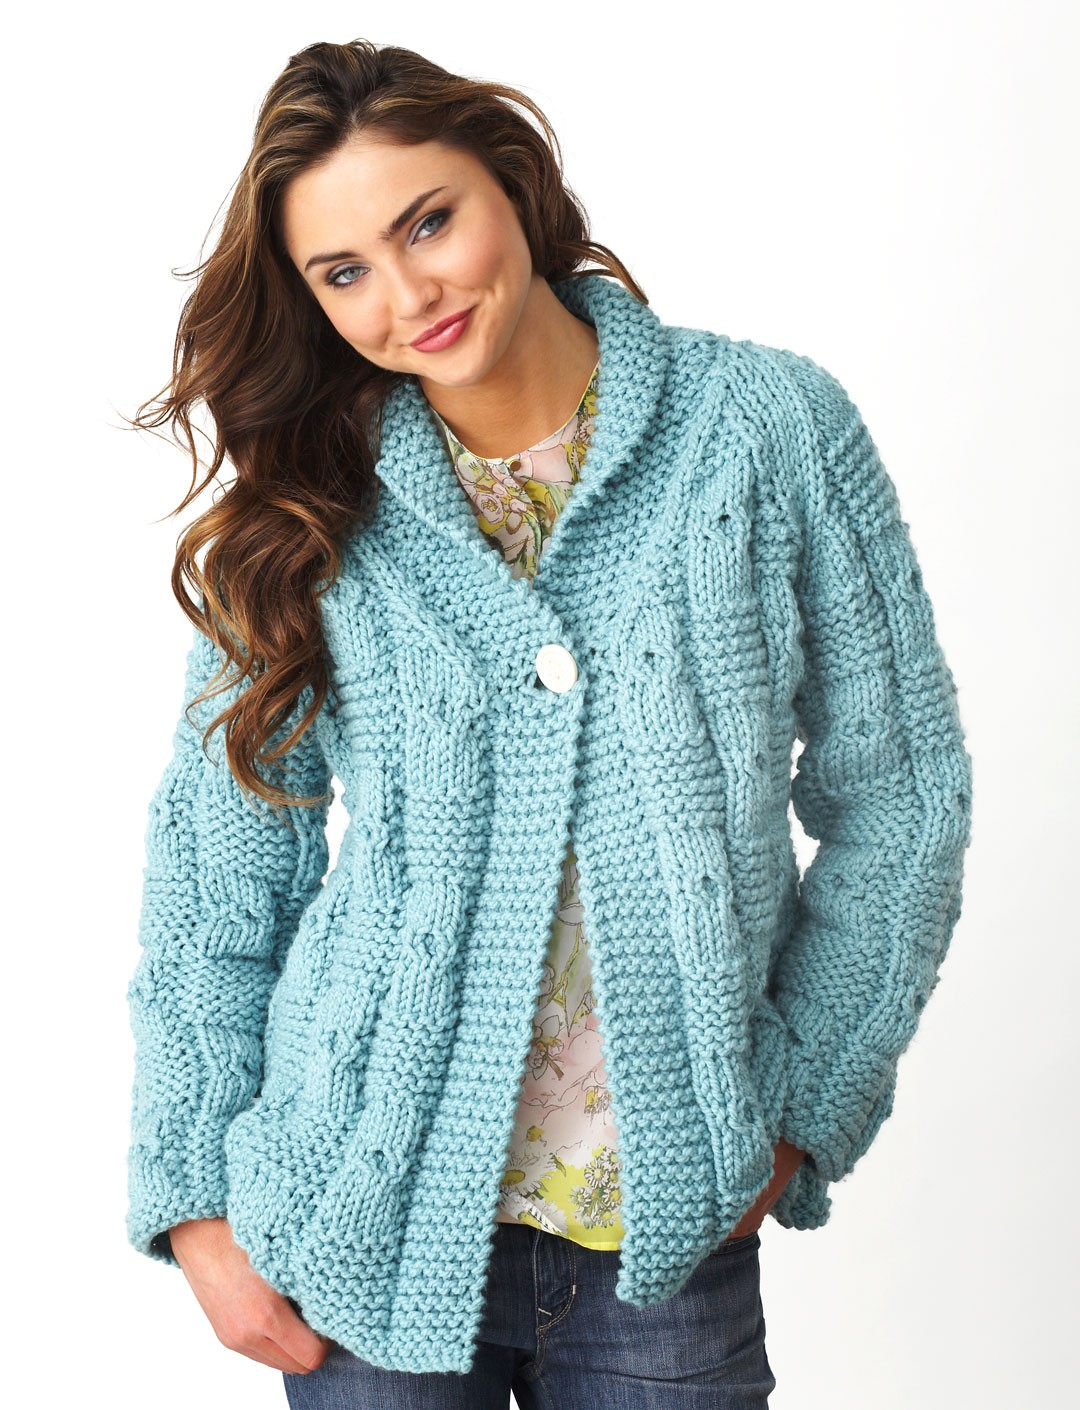 Free Knitting Pattern Chunky Wool Cardigan : Bernat Textured Checks Cardigan, Knit Pattern Yarnspirations